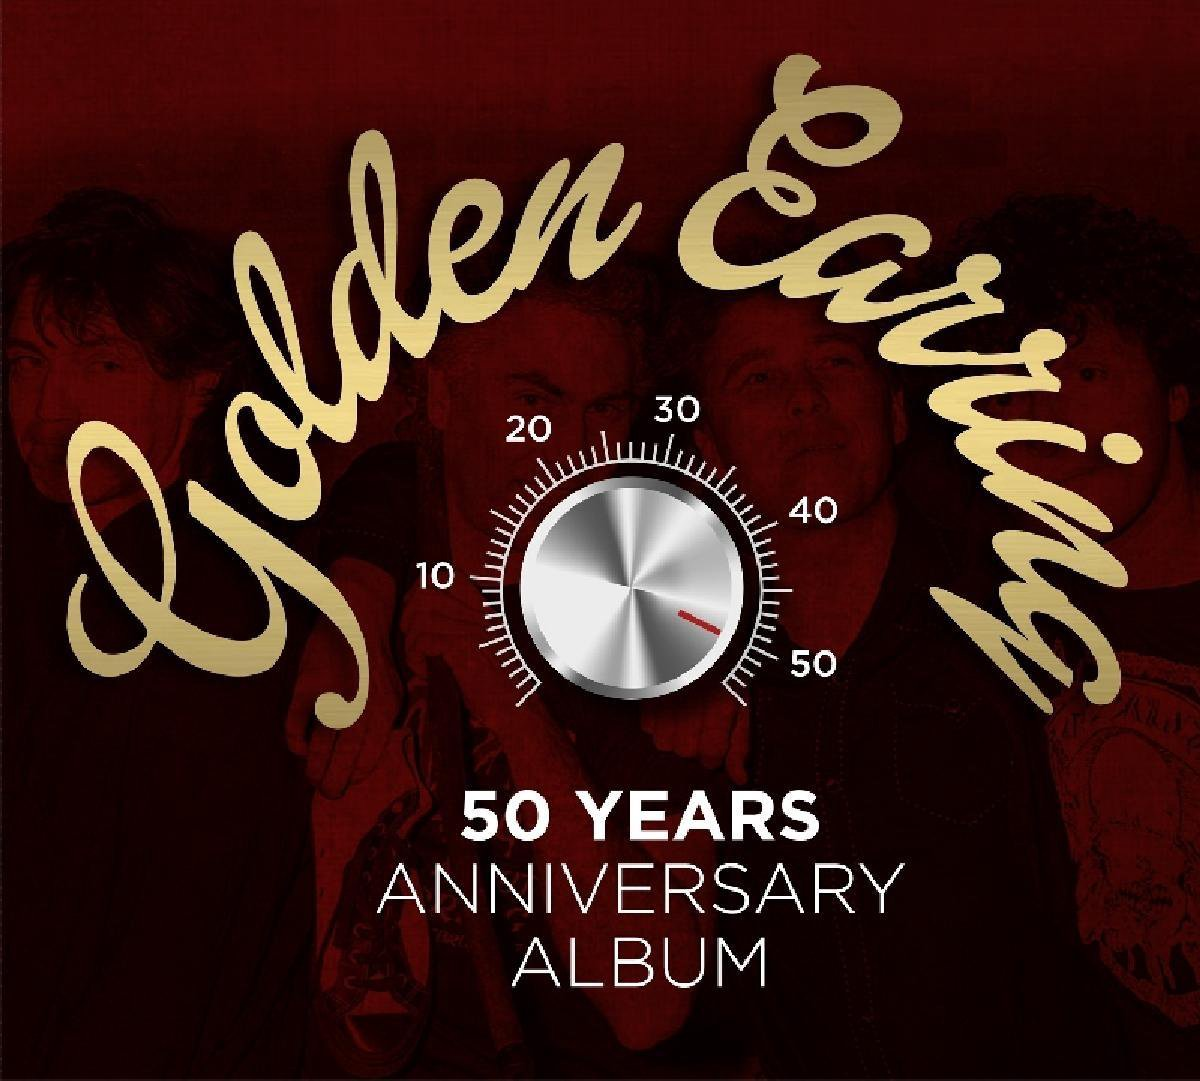 50 Years Anniversary Album - Golden Earring